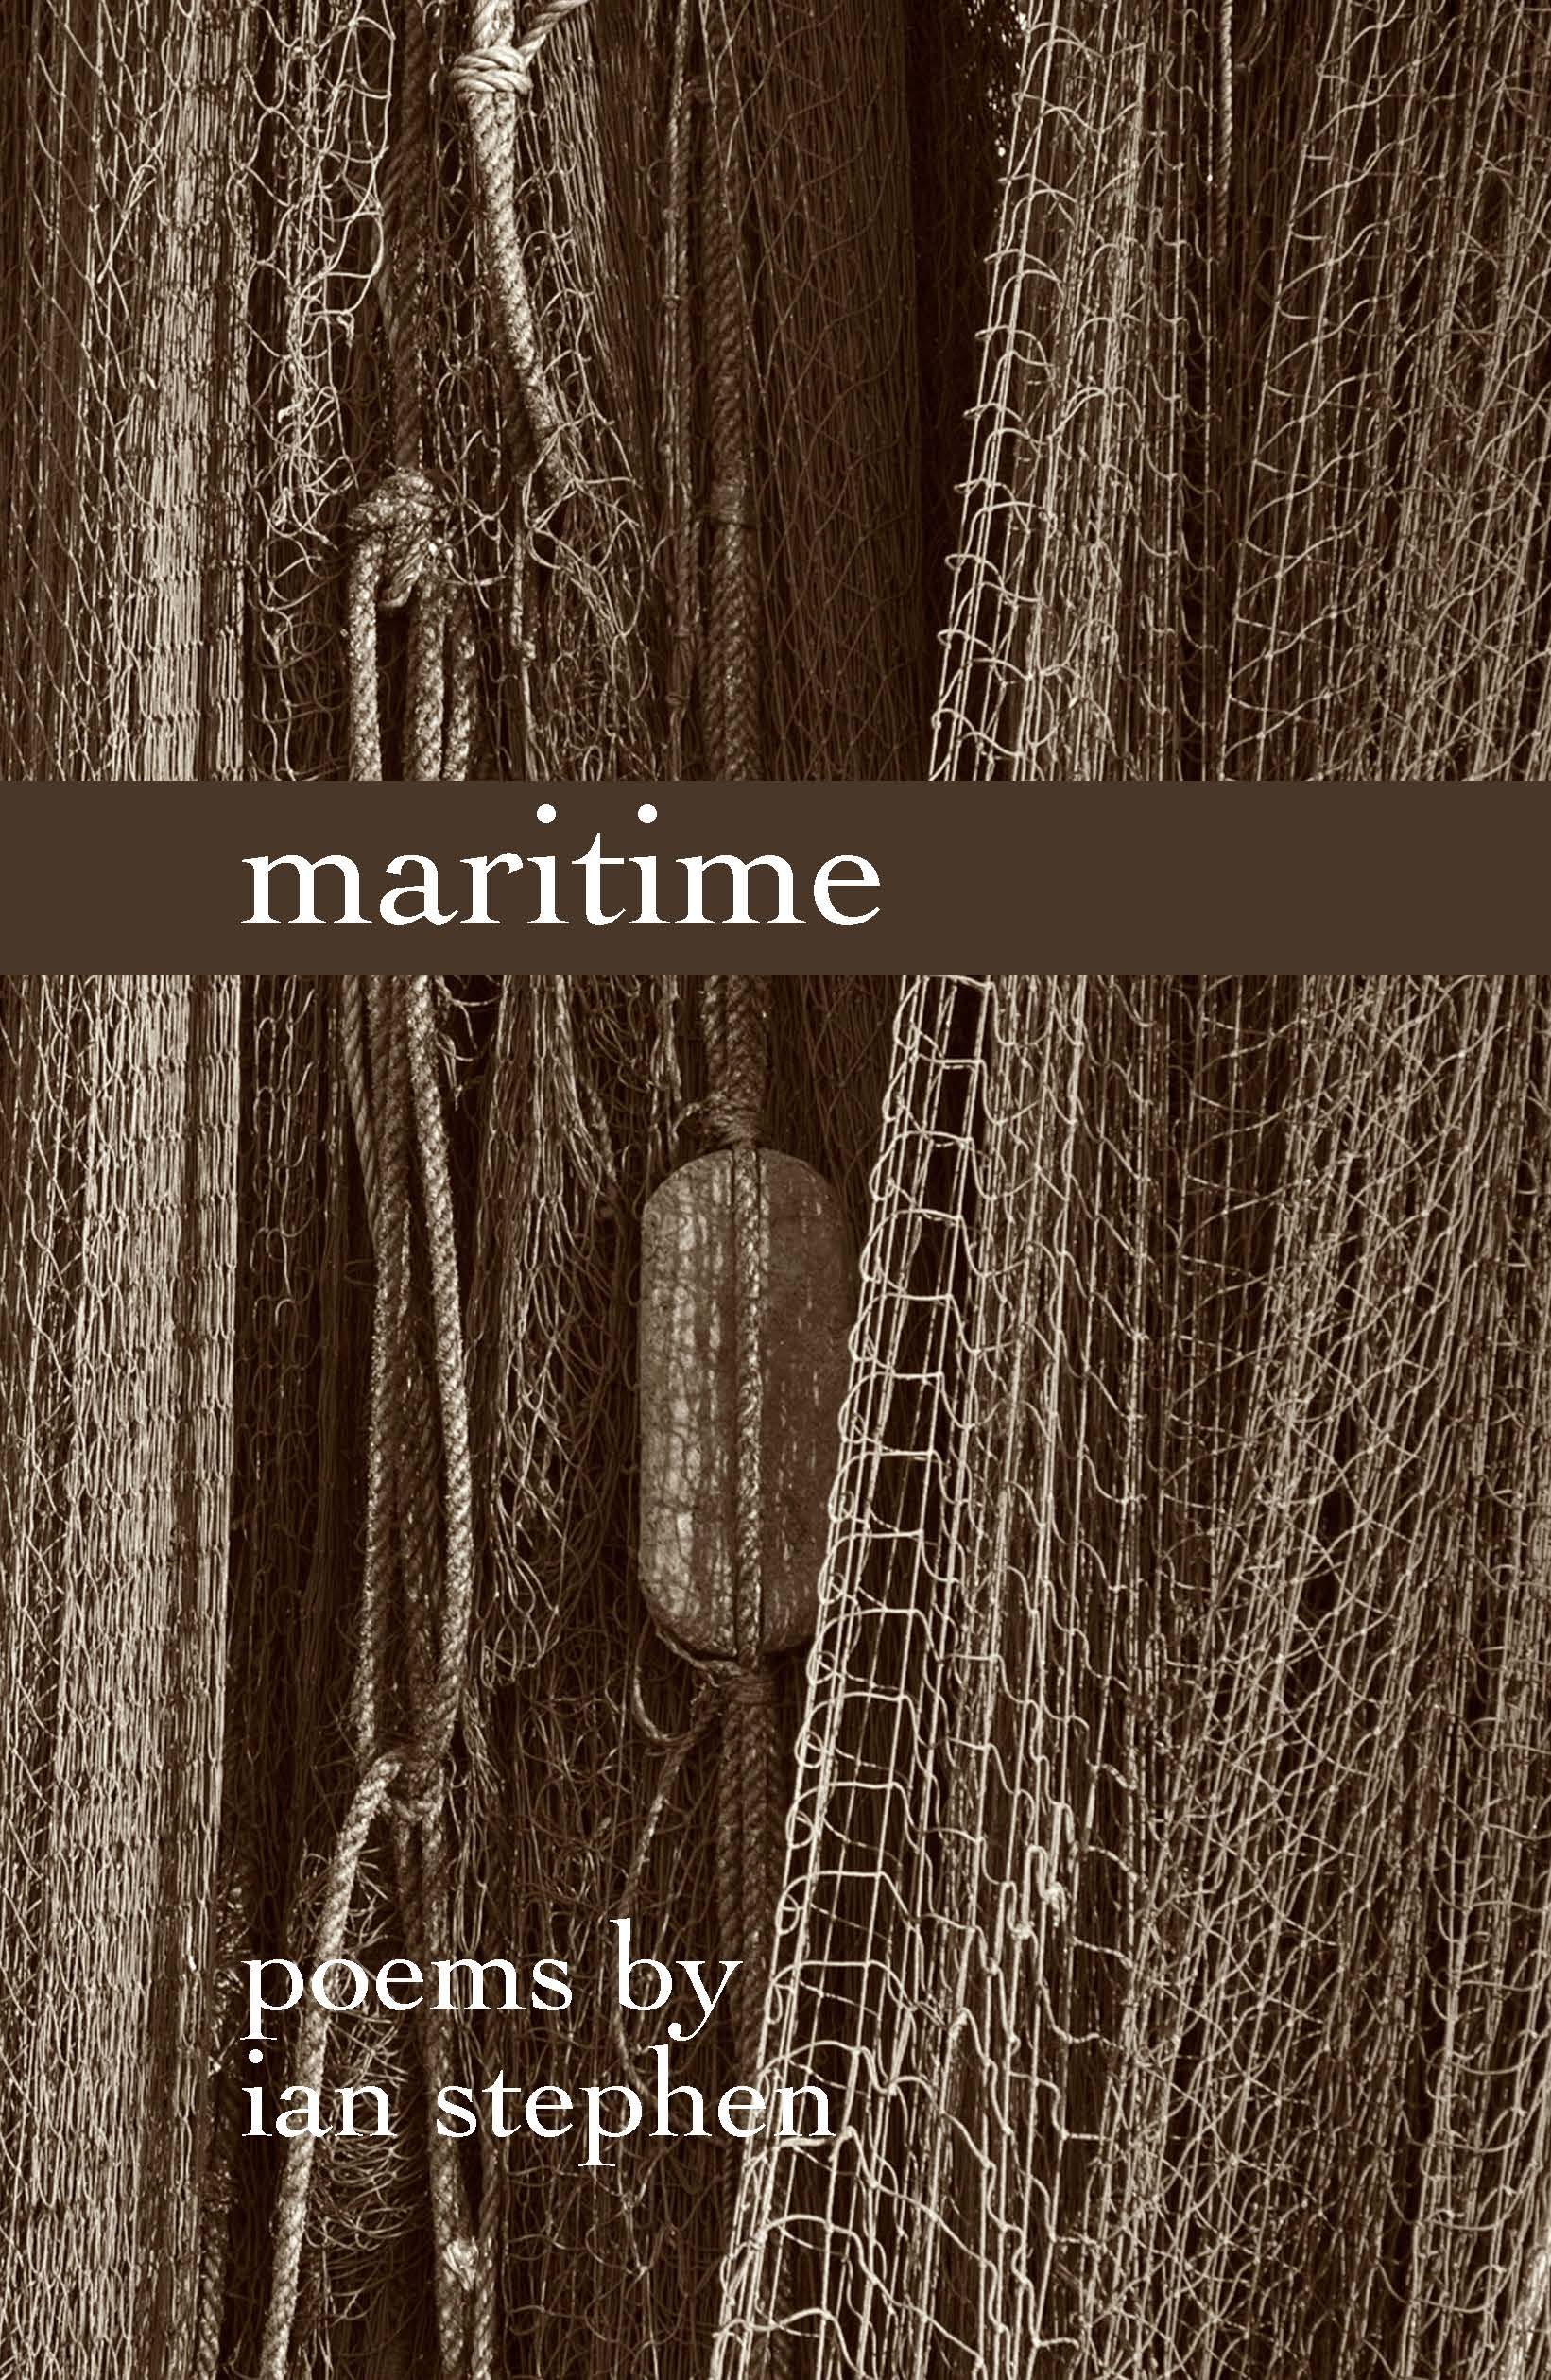 Featured image of maritime